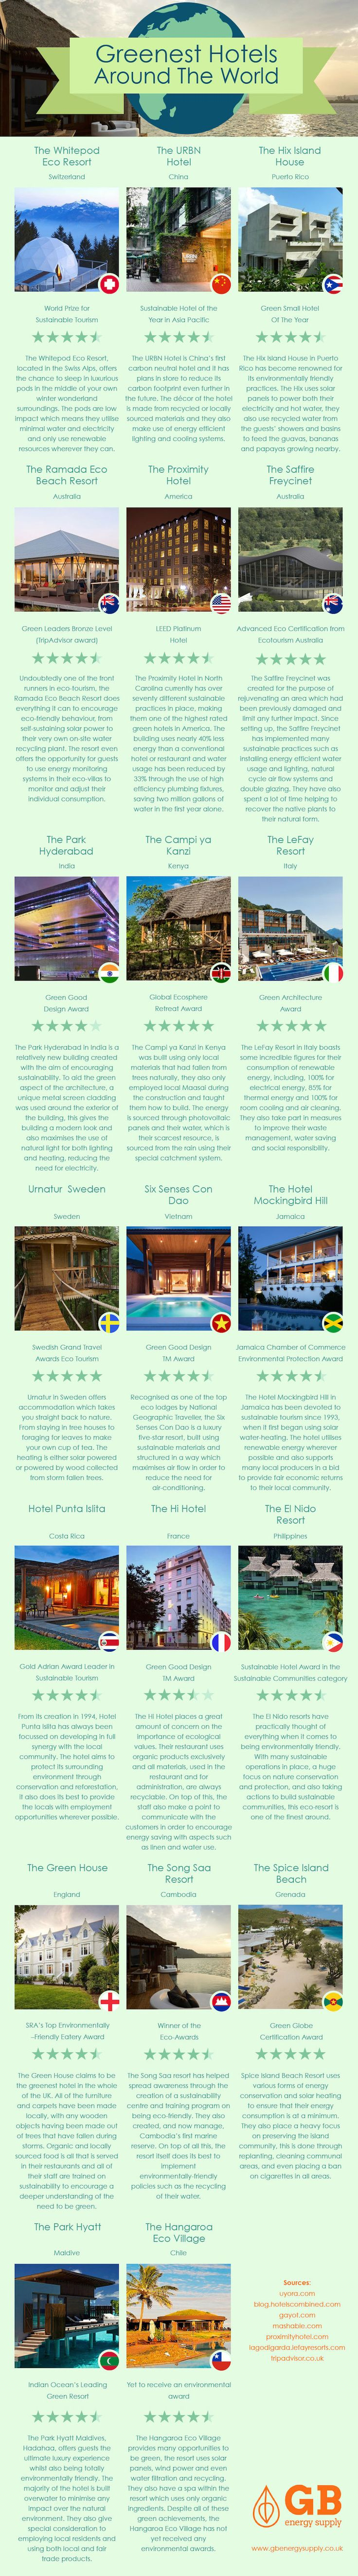 GB energy supply, Whitepod Eco Resort, Proximity Hotel, green hotel, eco-friendly hotel, sustainable hotel, reader submitted content, infographic, greenest hotels infographic, world's greenest hotels